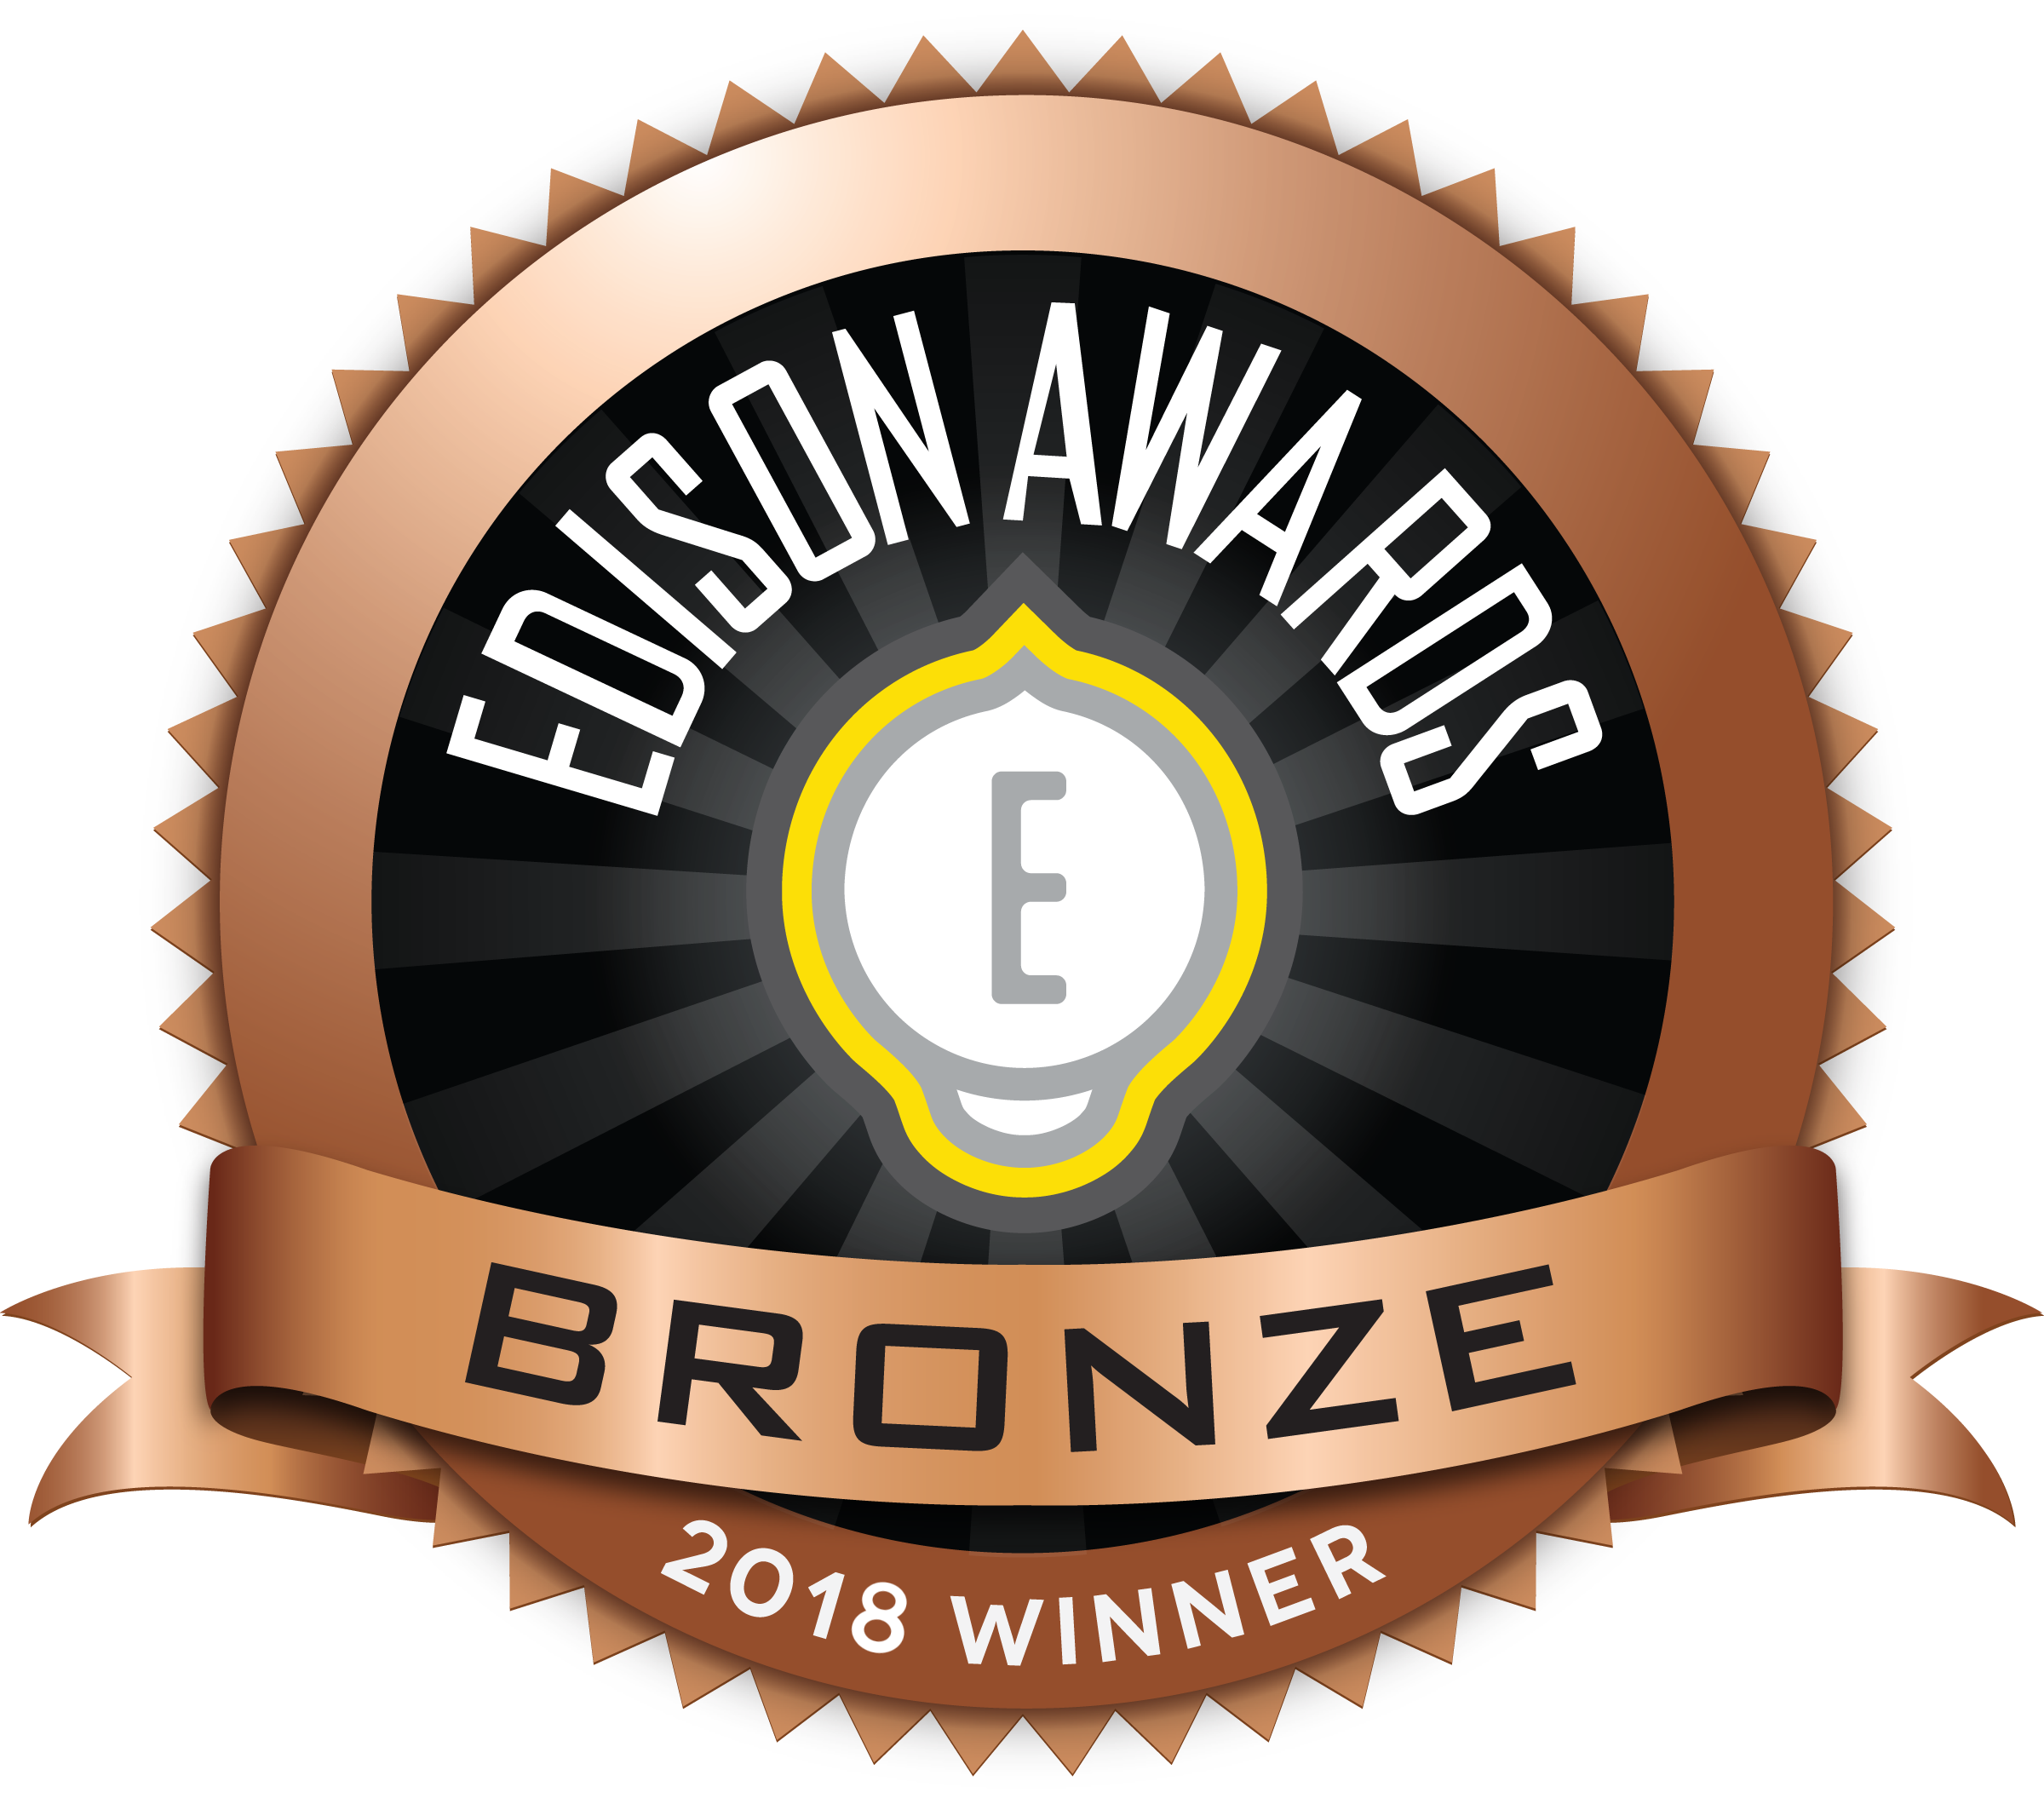 Edison Awards - Bronze 2018 Winner